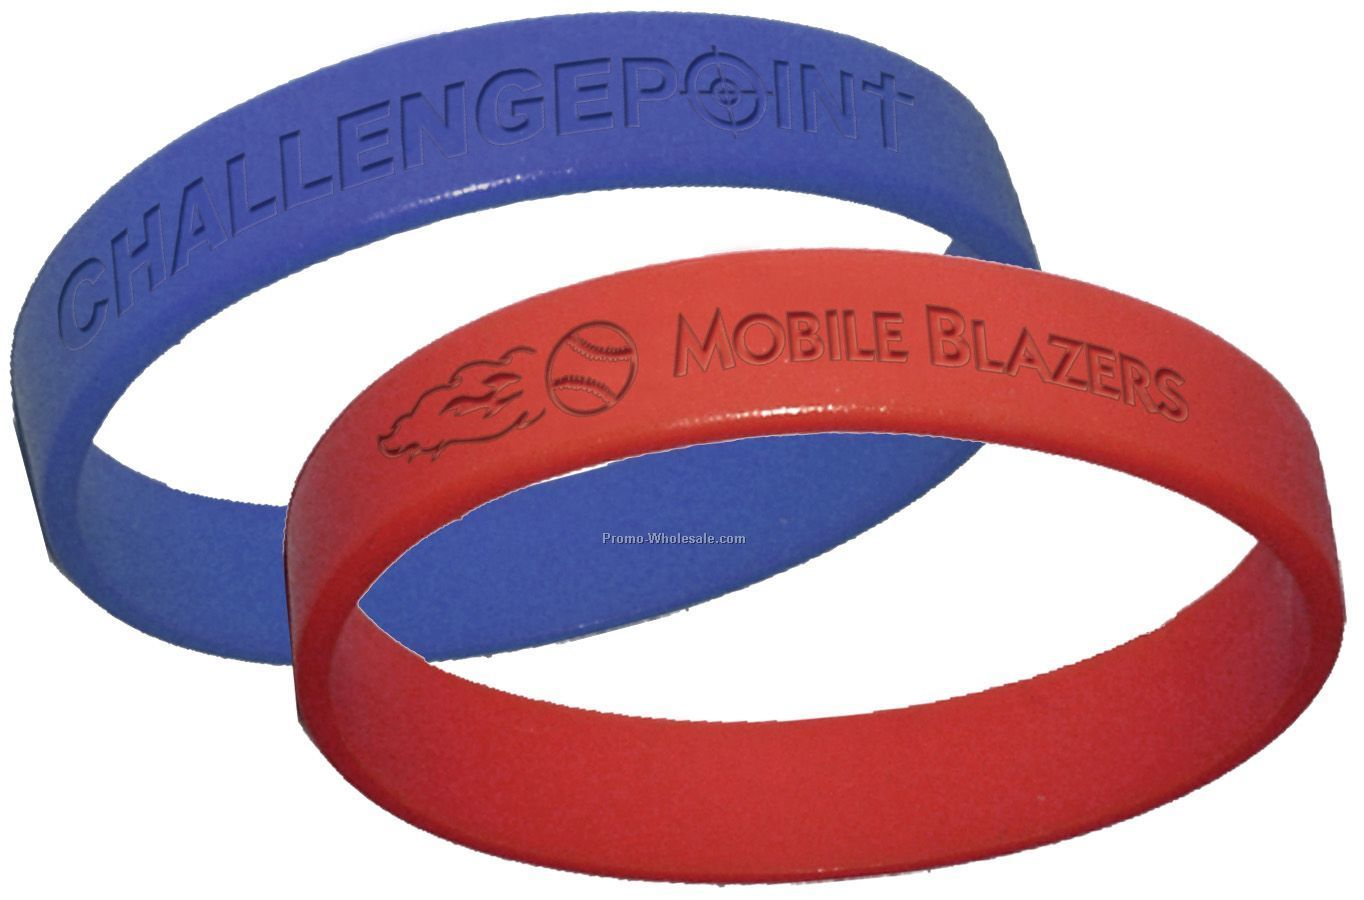 A tool for fundraising – Silicone bracelets